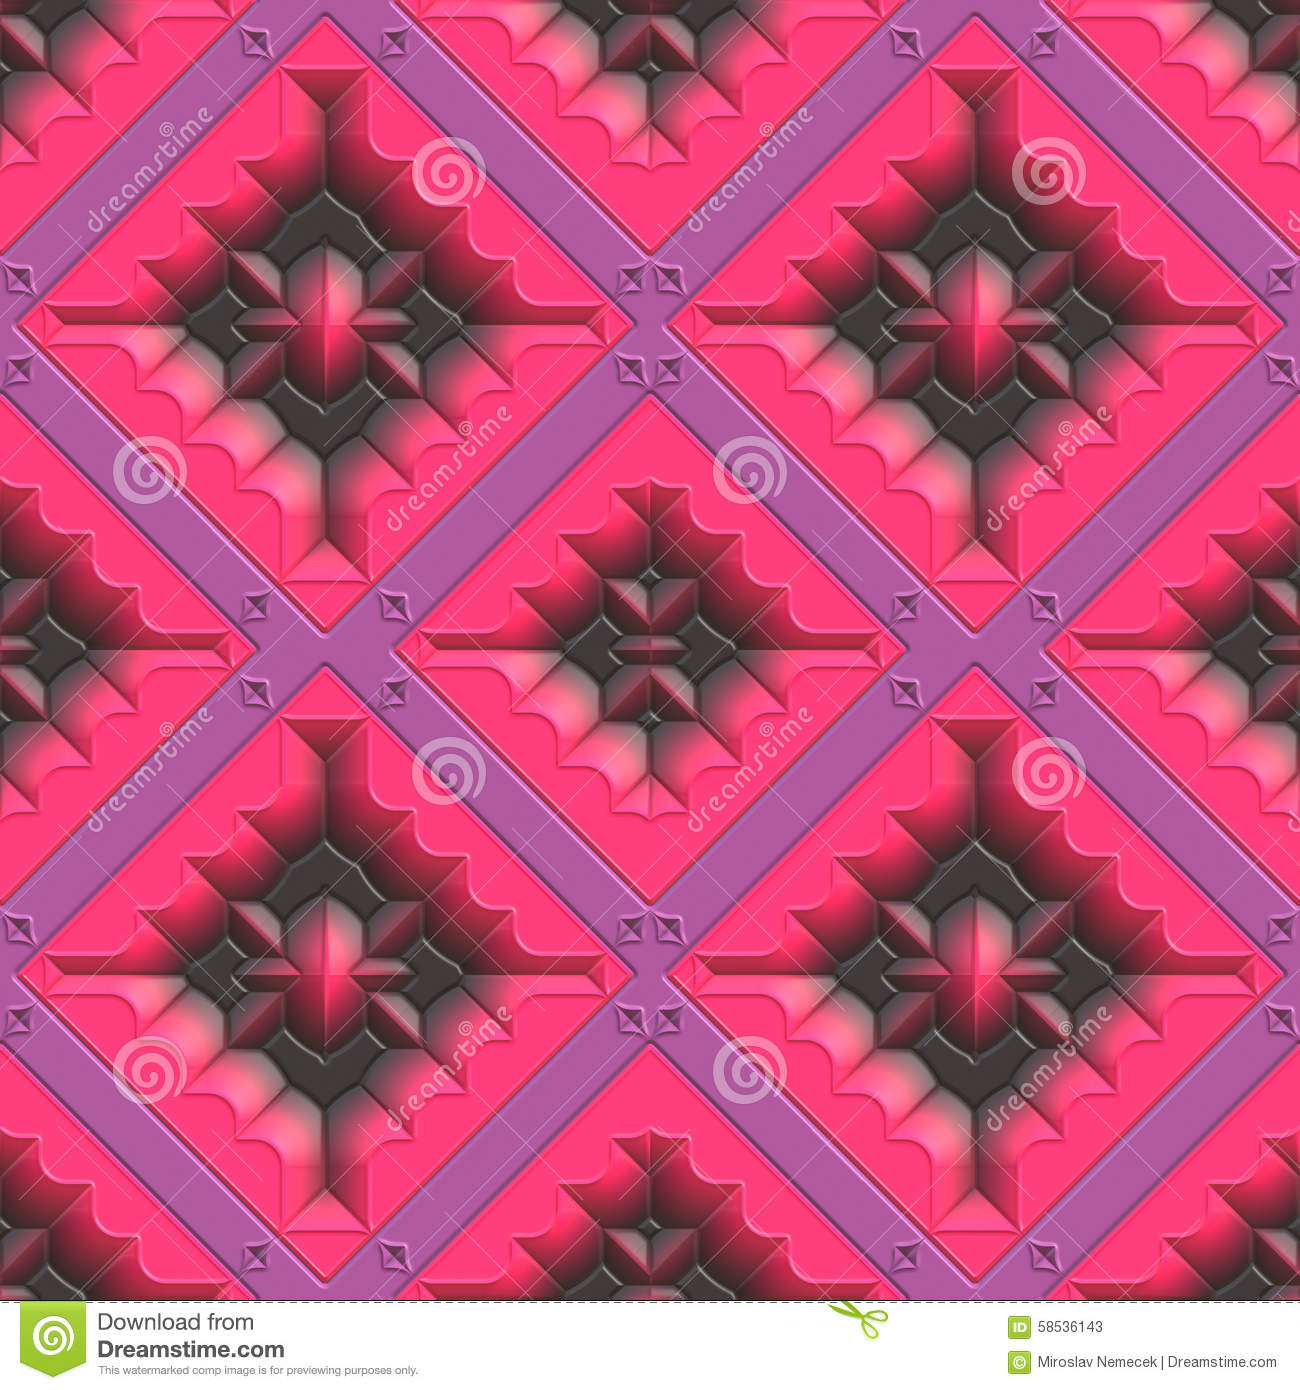 generated seamless tile background - photo #9